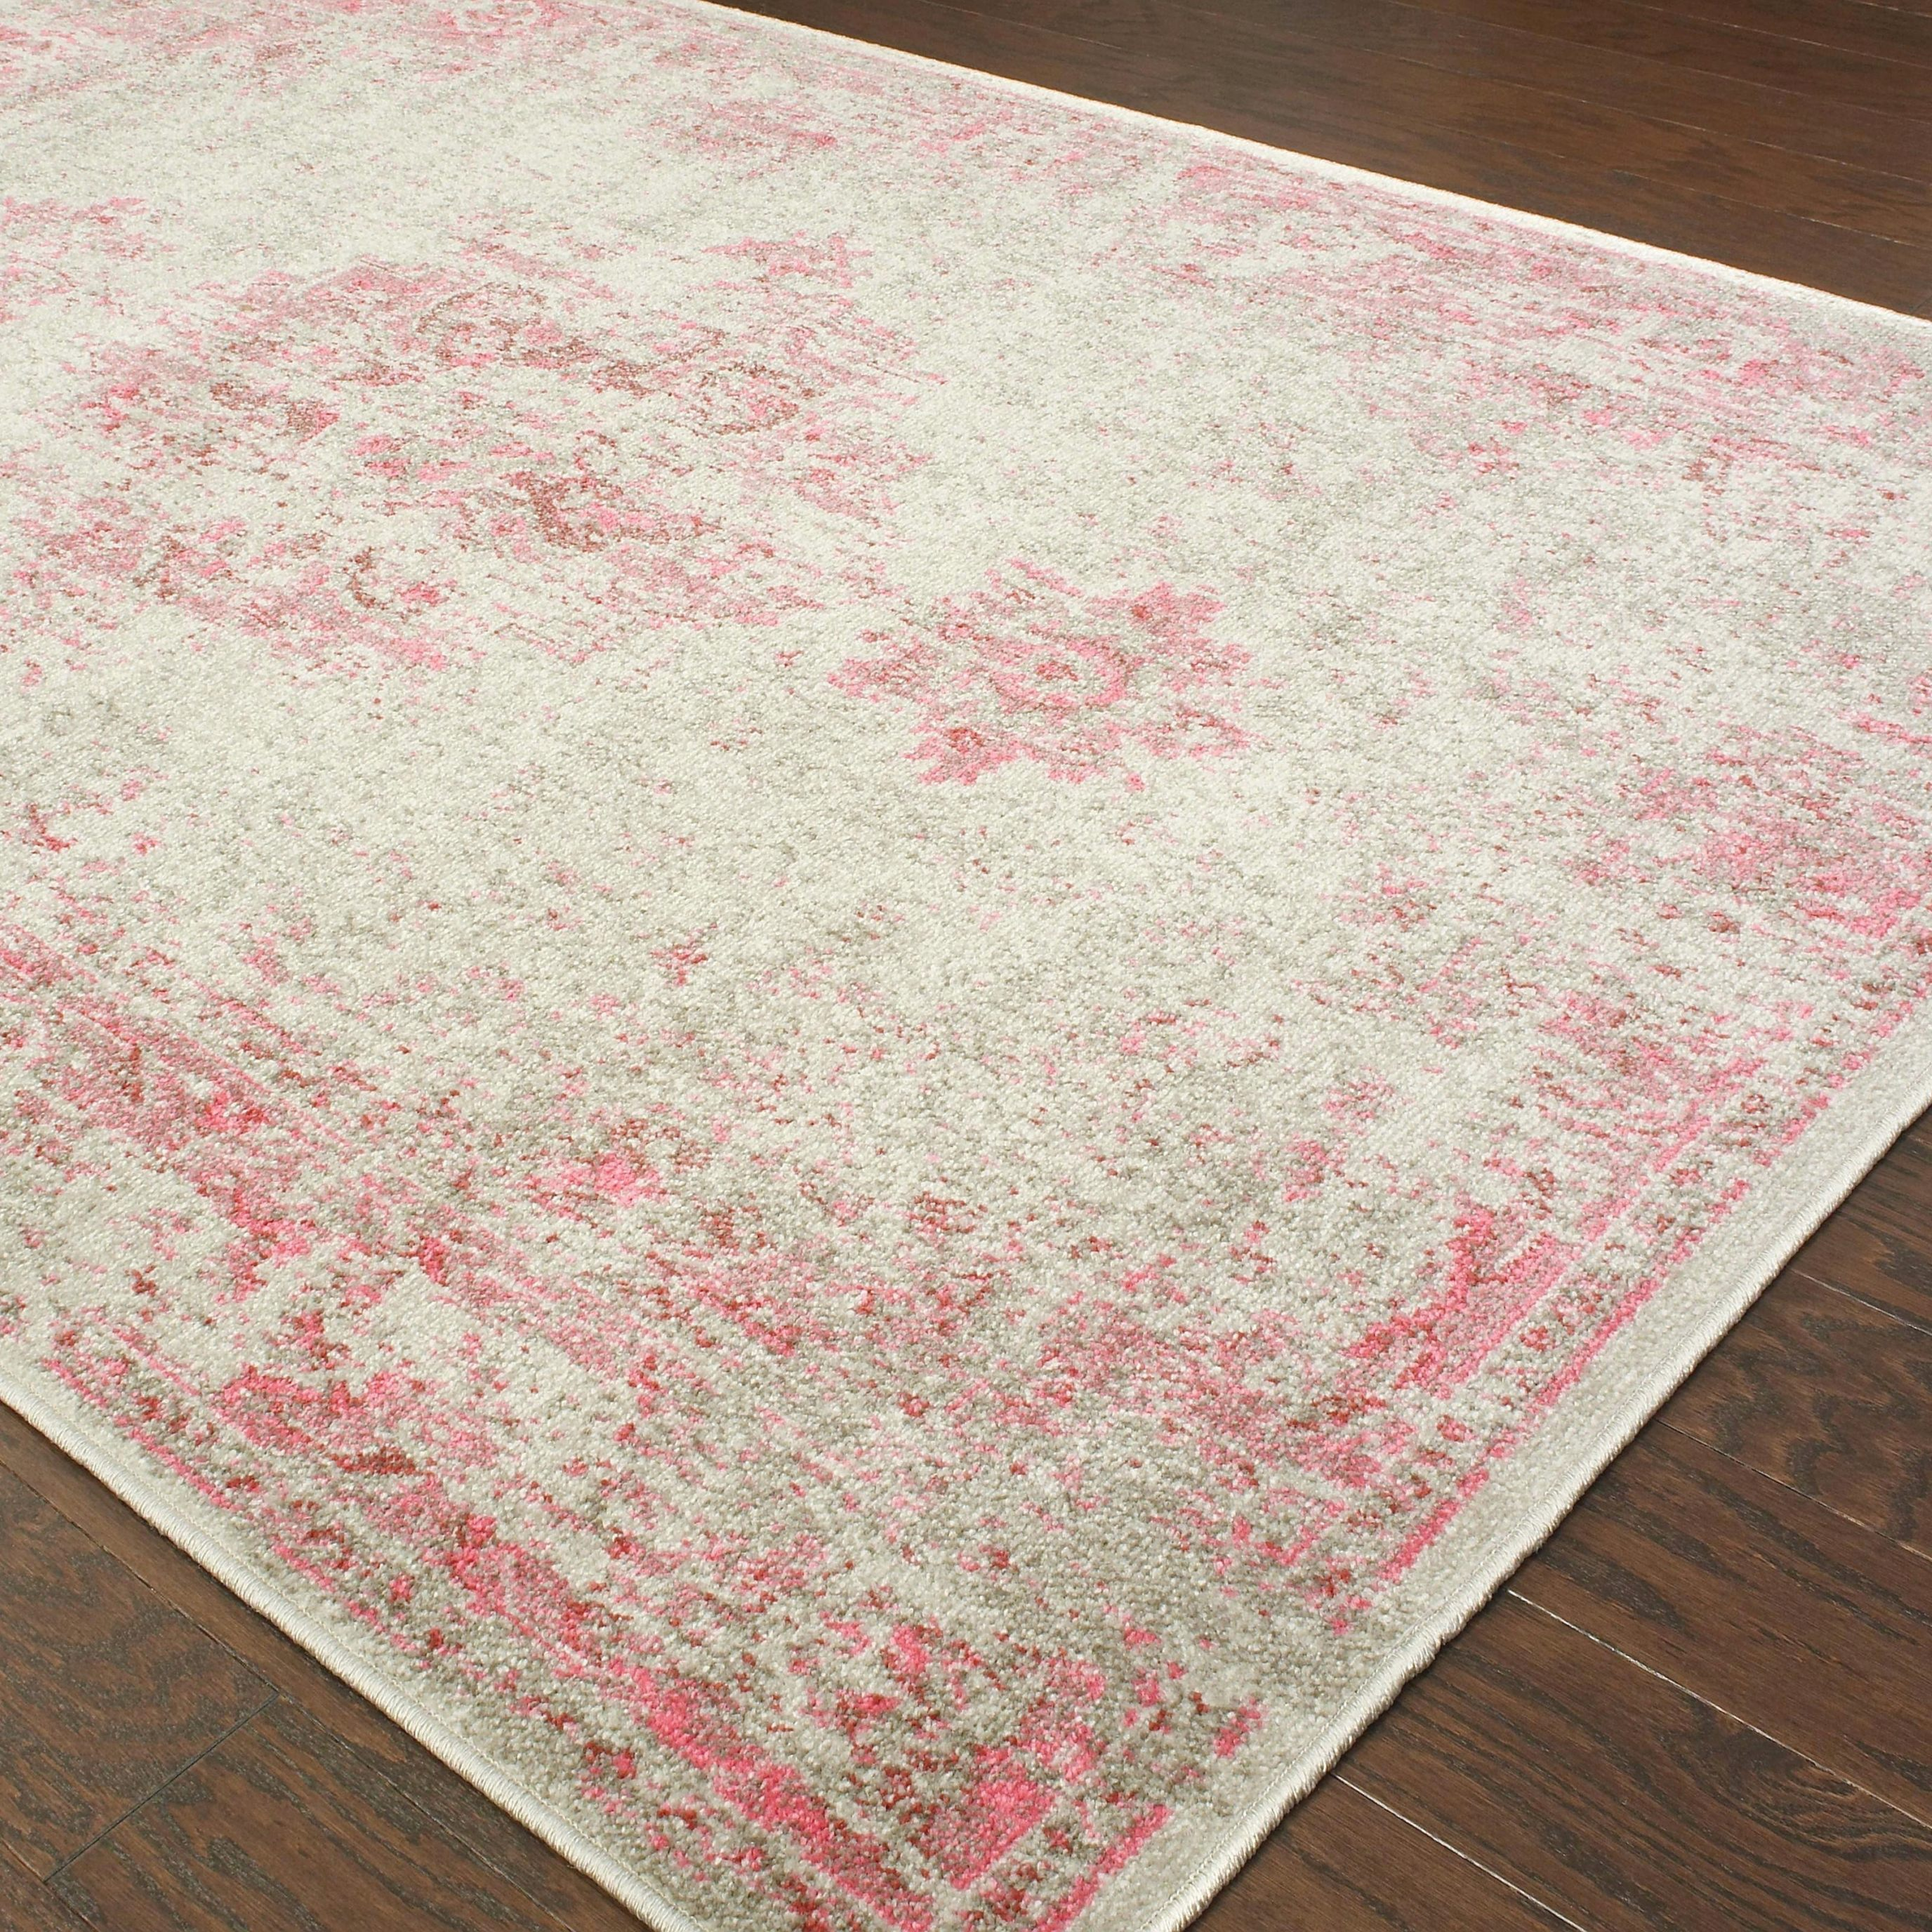 photo 6 of 11 pink area rugs cheap rug for nursery tar light IMSKGVP